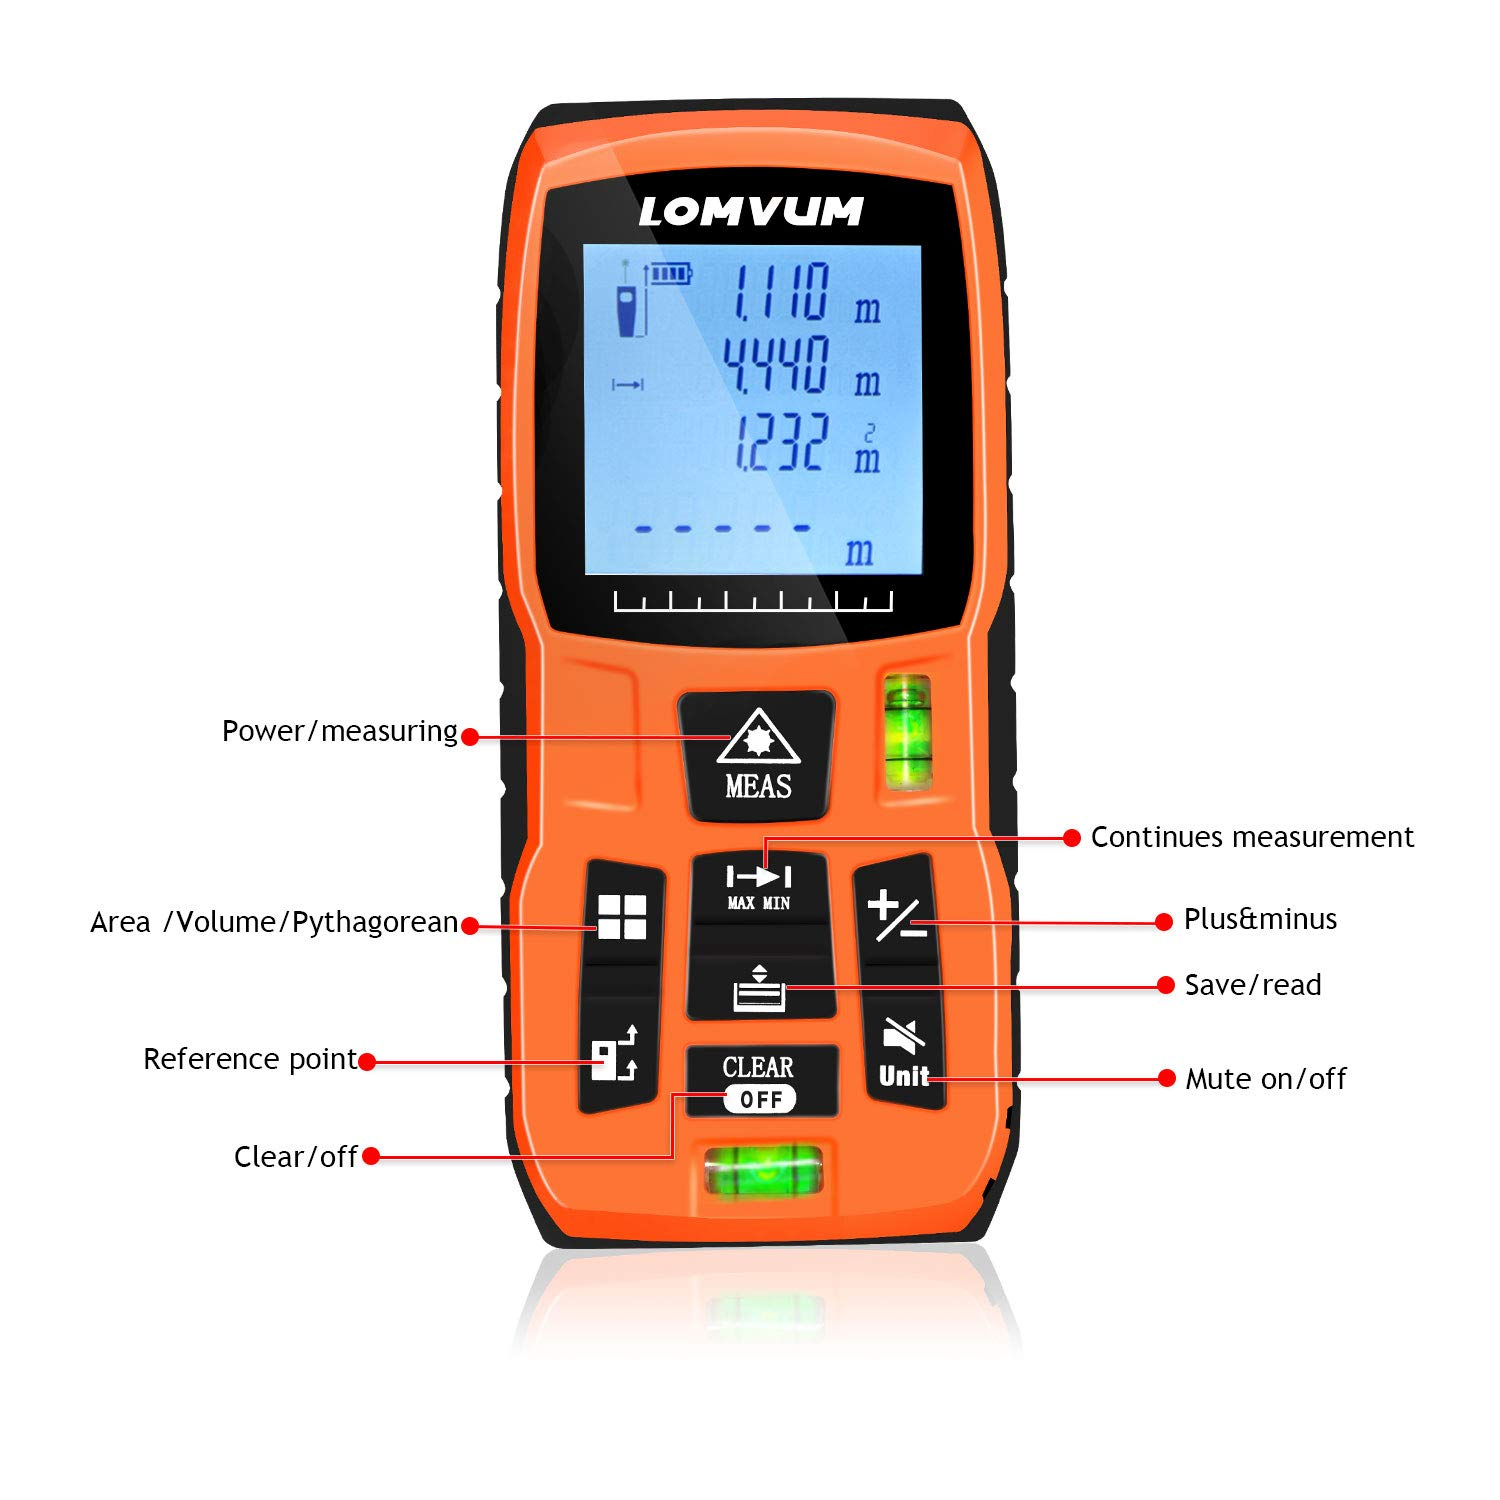 LOMVUM 120m Laser Measure, 393ft Digital Laser Distance Meter with Mute Function Large LCD Backlight Display,Measure Distance,Area and Volume,Pythagorean Mode Battery Included